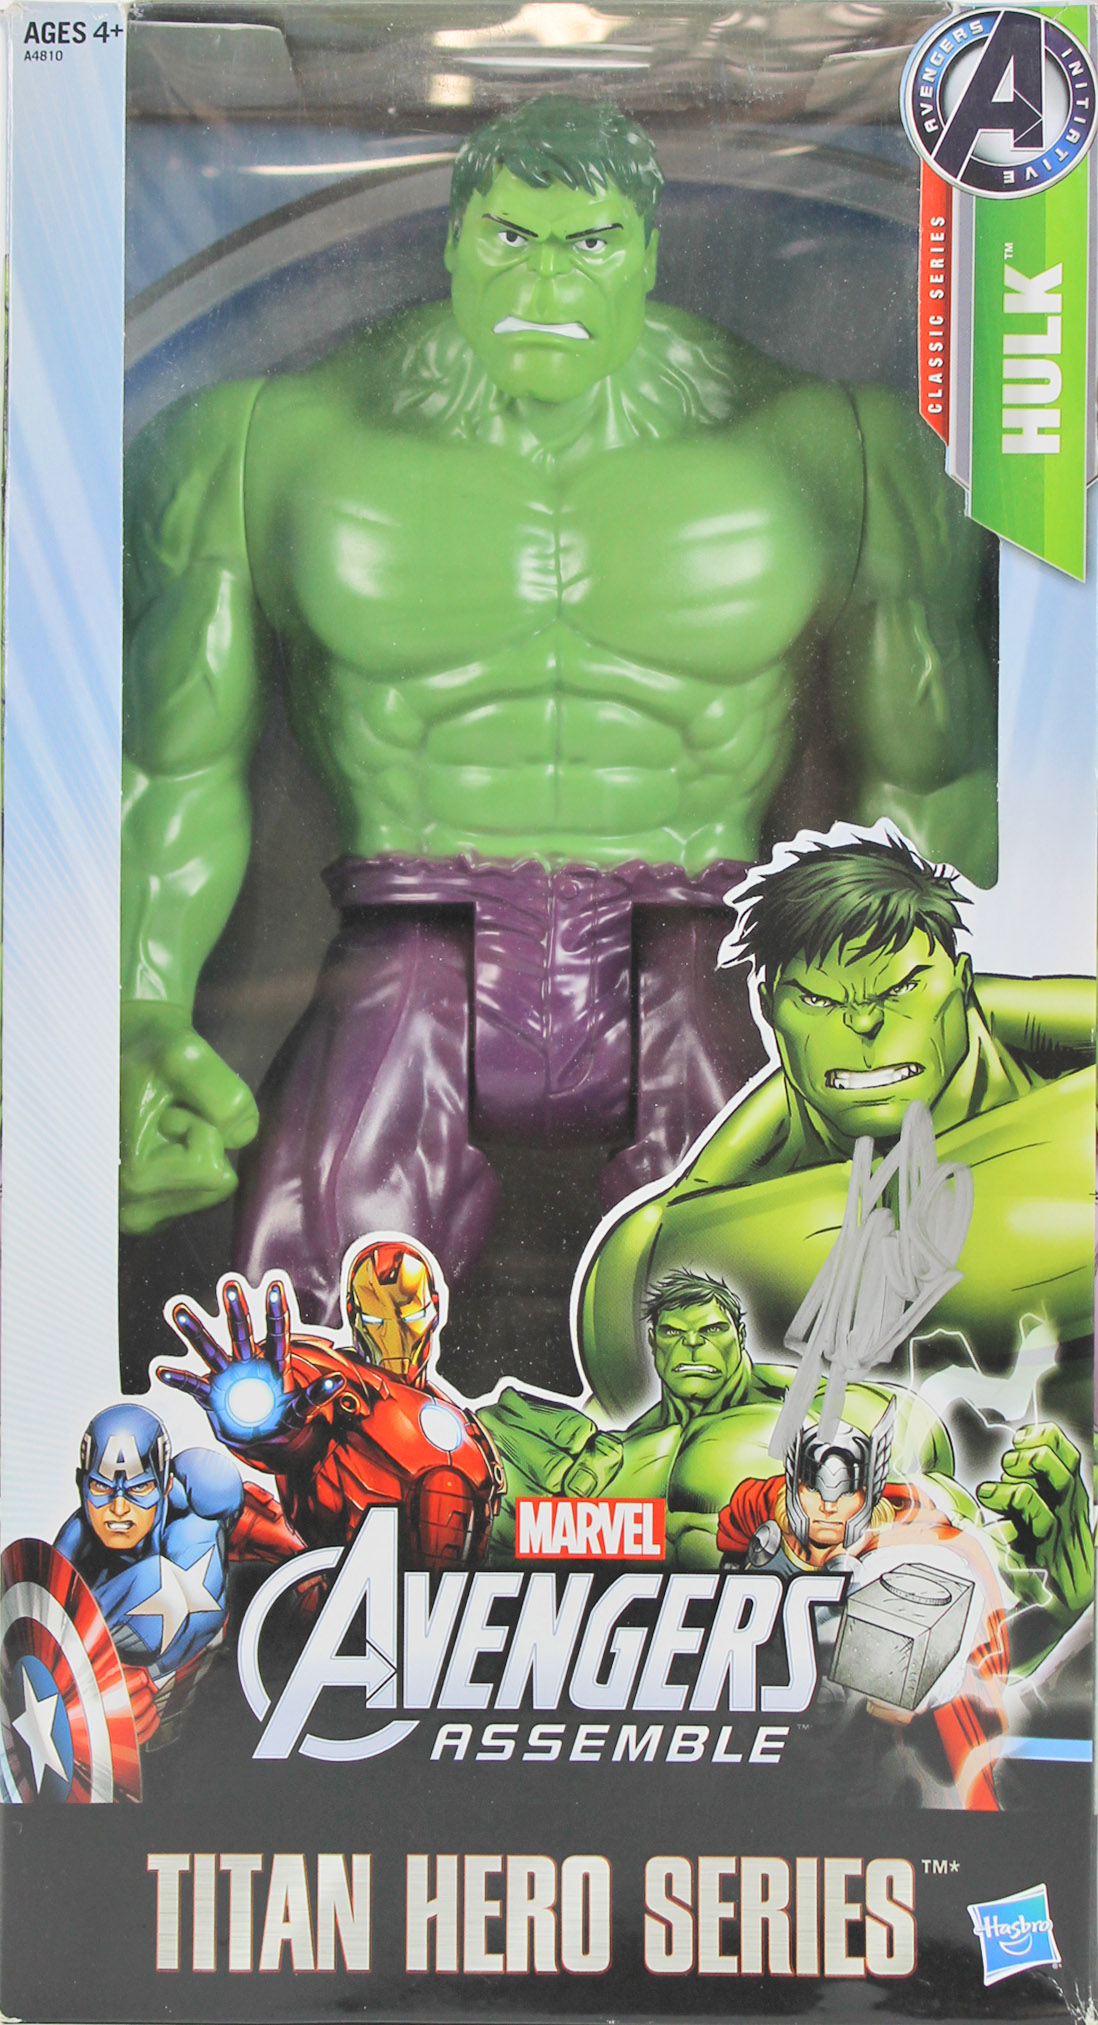 Stan Lee Marvel Signed The Hulk Titan Hero Series Action Figure PSA #6A20983